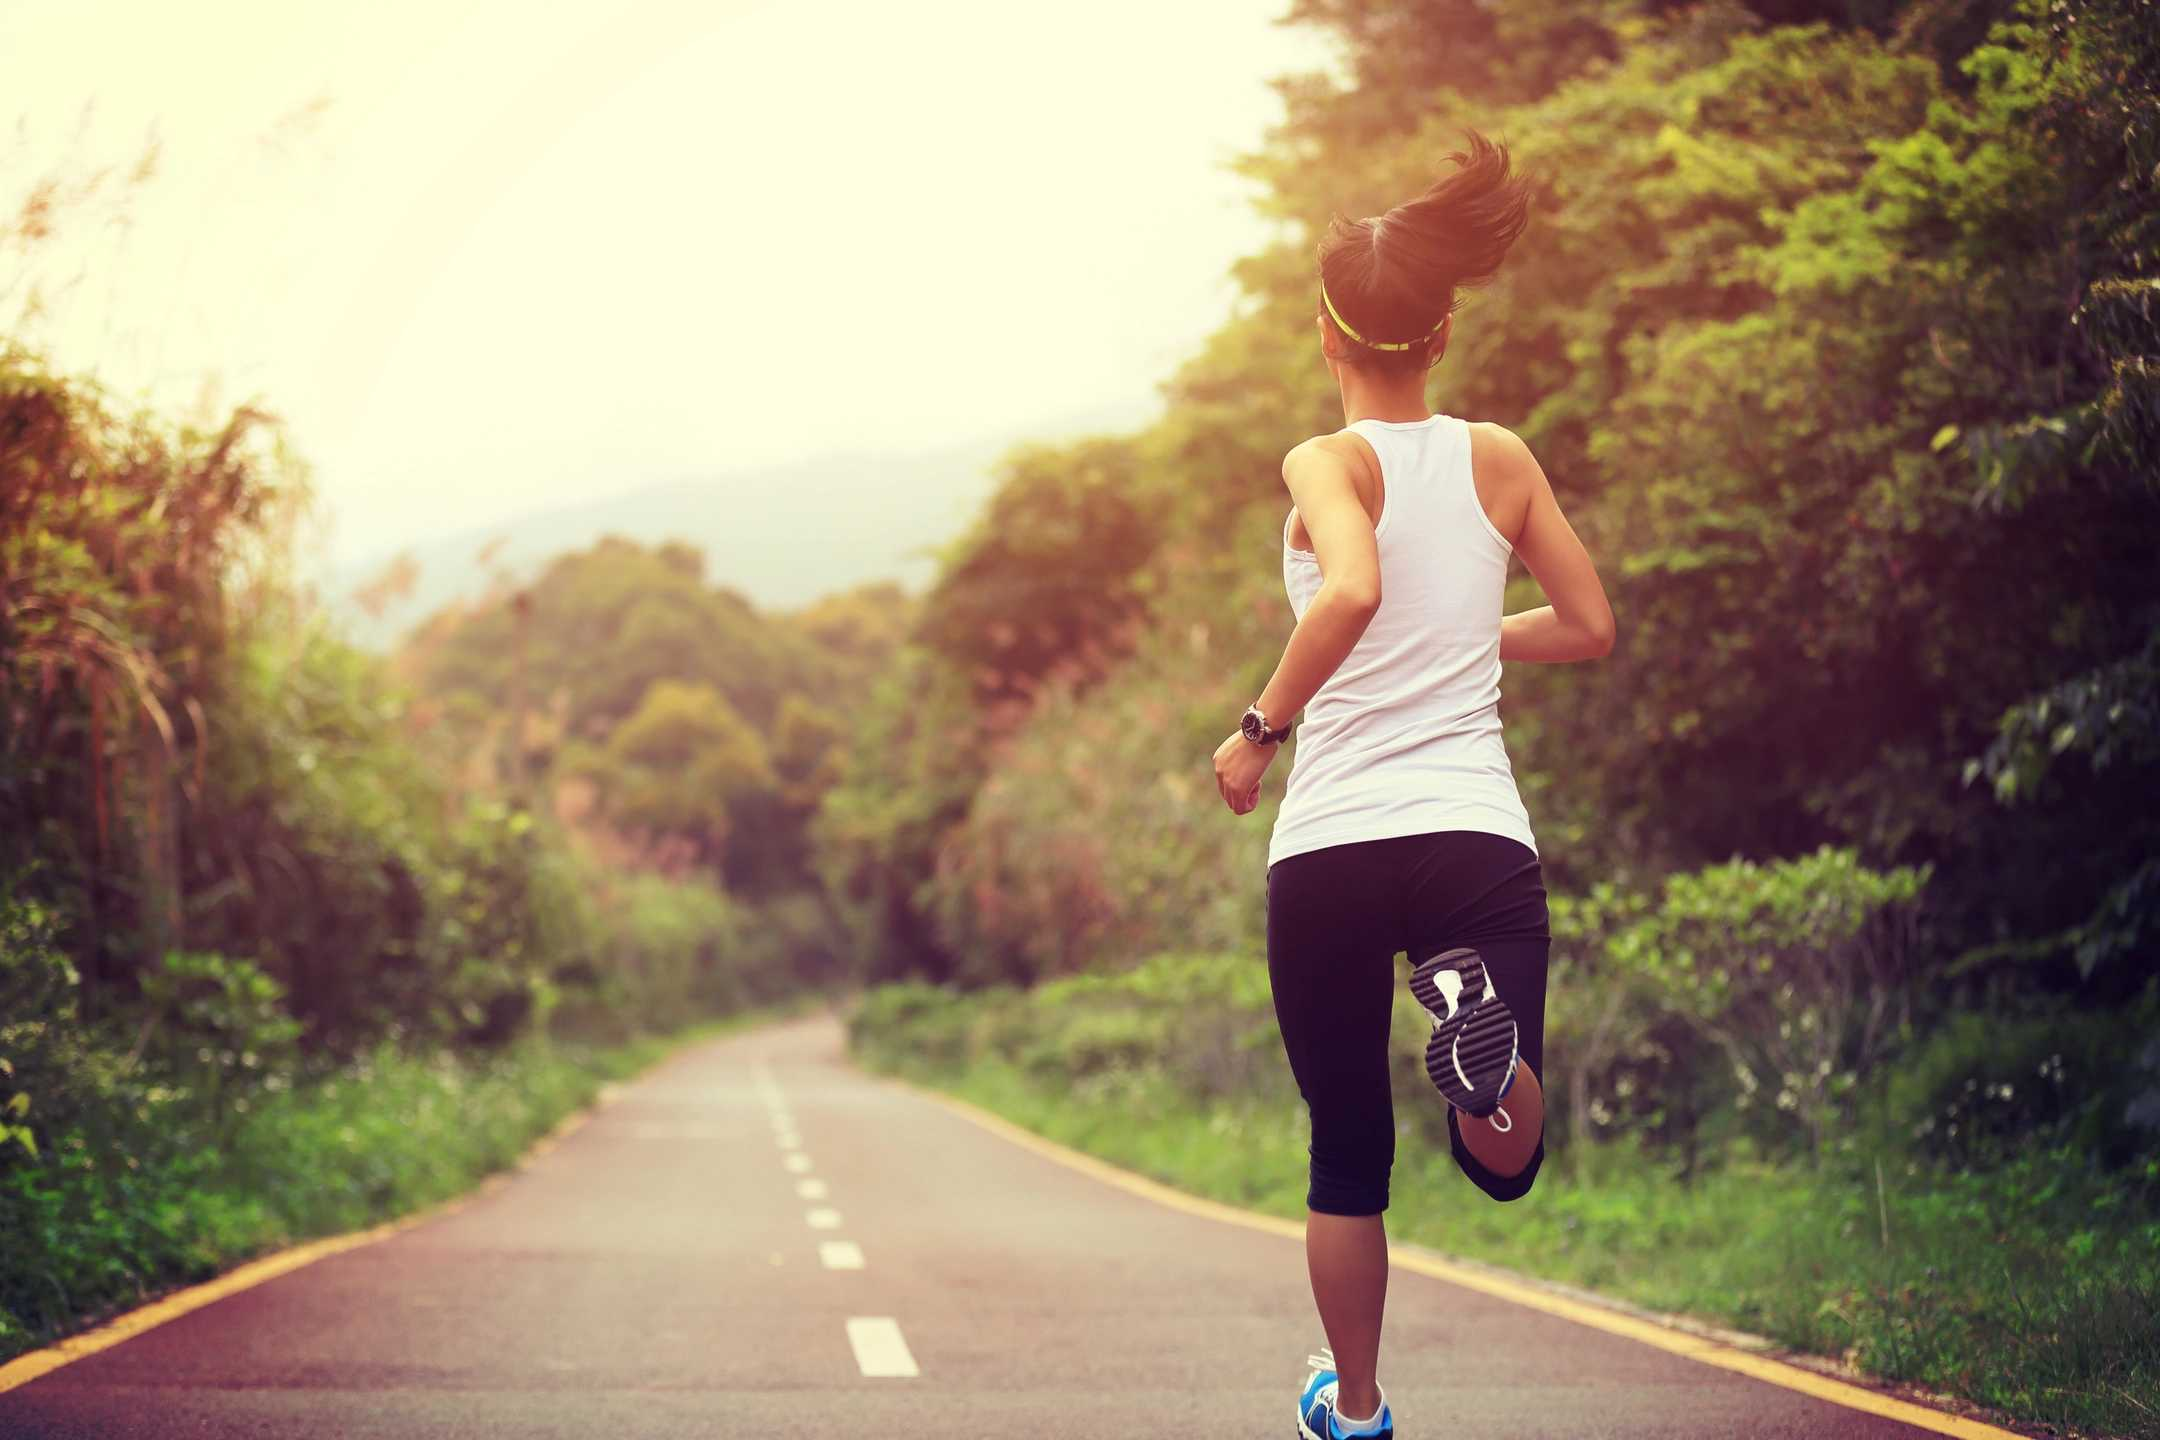 3 Things Every Athlete Should Do Before Participating in Sports